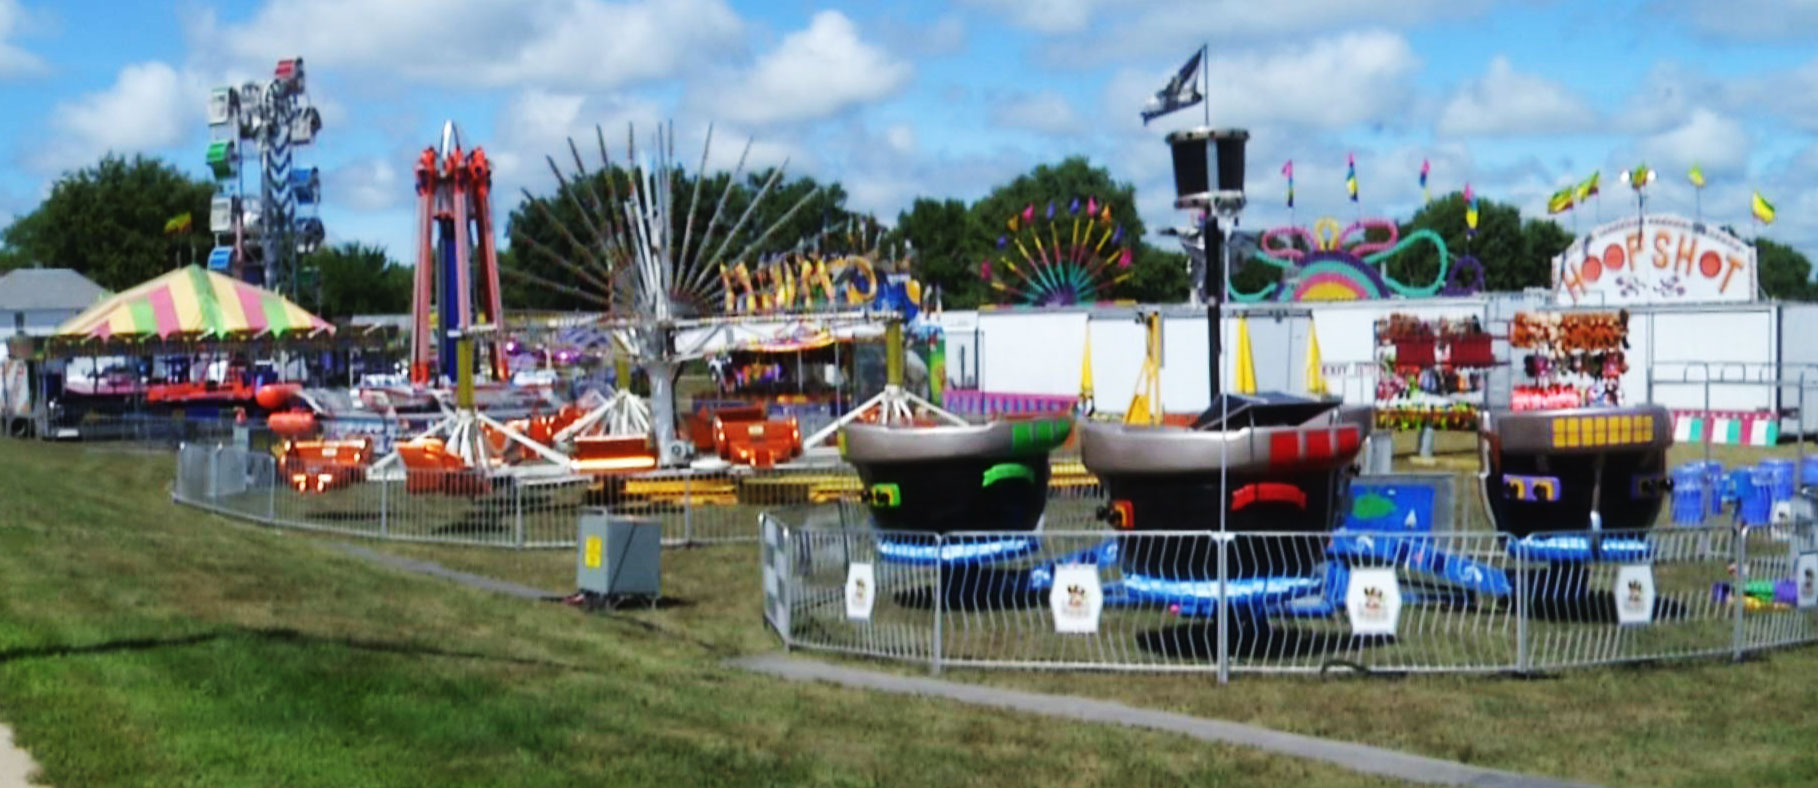 Keloland Auto Mall >> Turner County Fair Celebrates 137 Years Of Fun